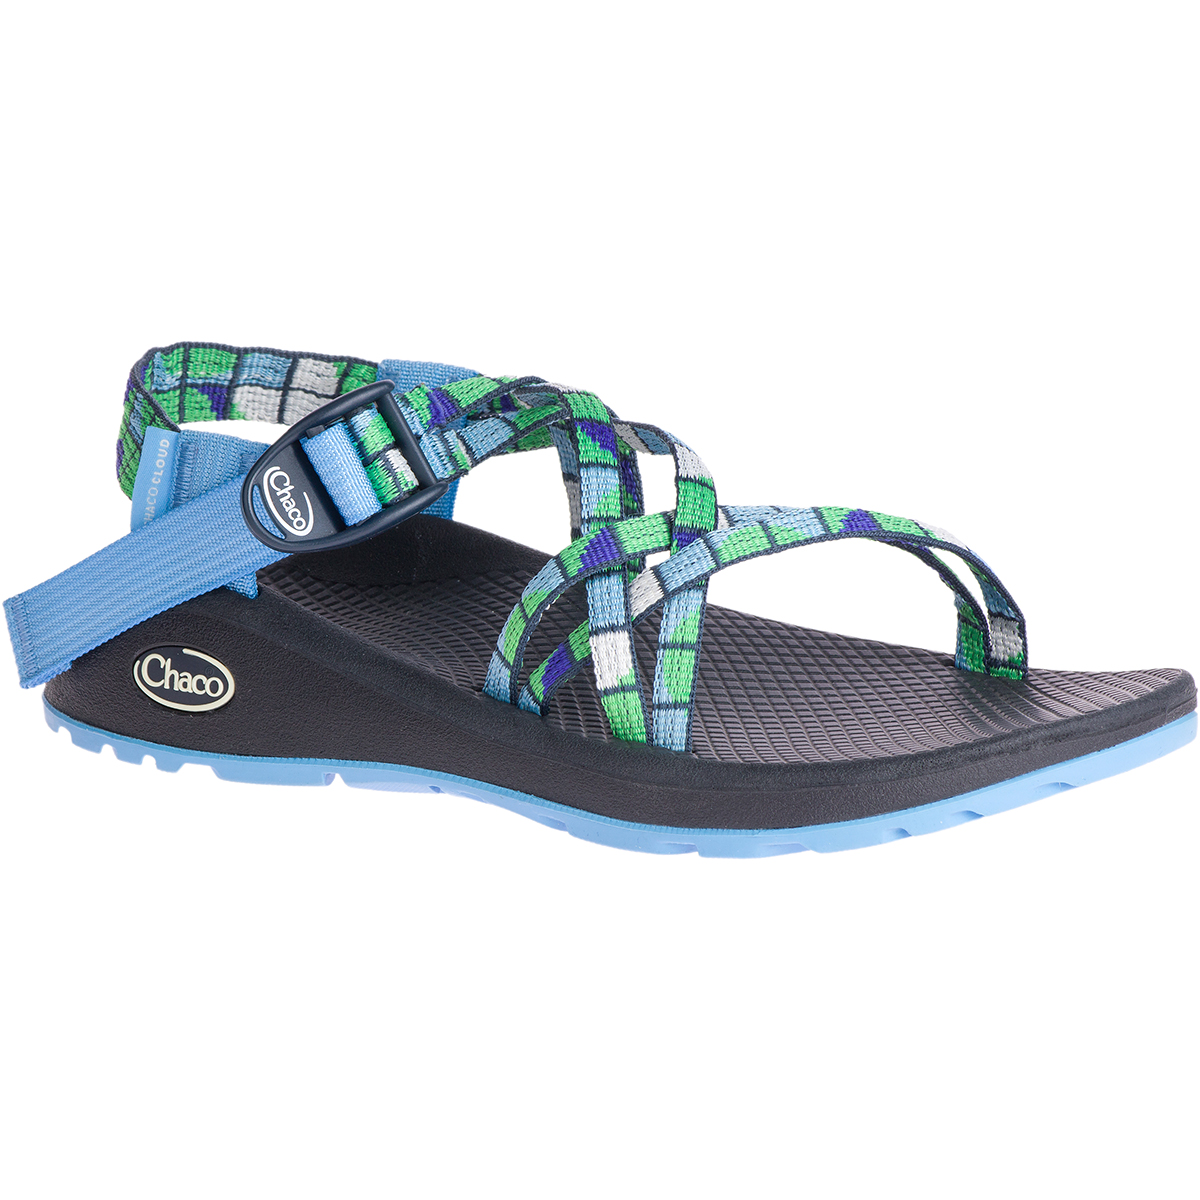 Chaco Women's Z/cloud X Sandals - Blue, 8